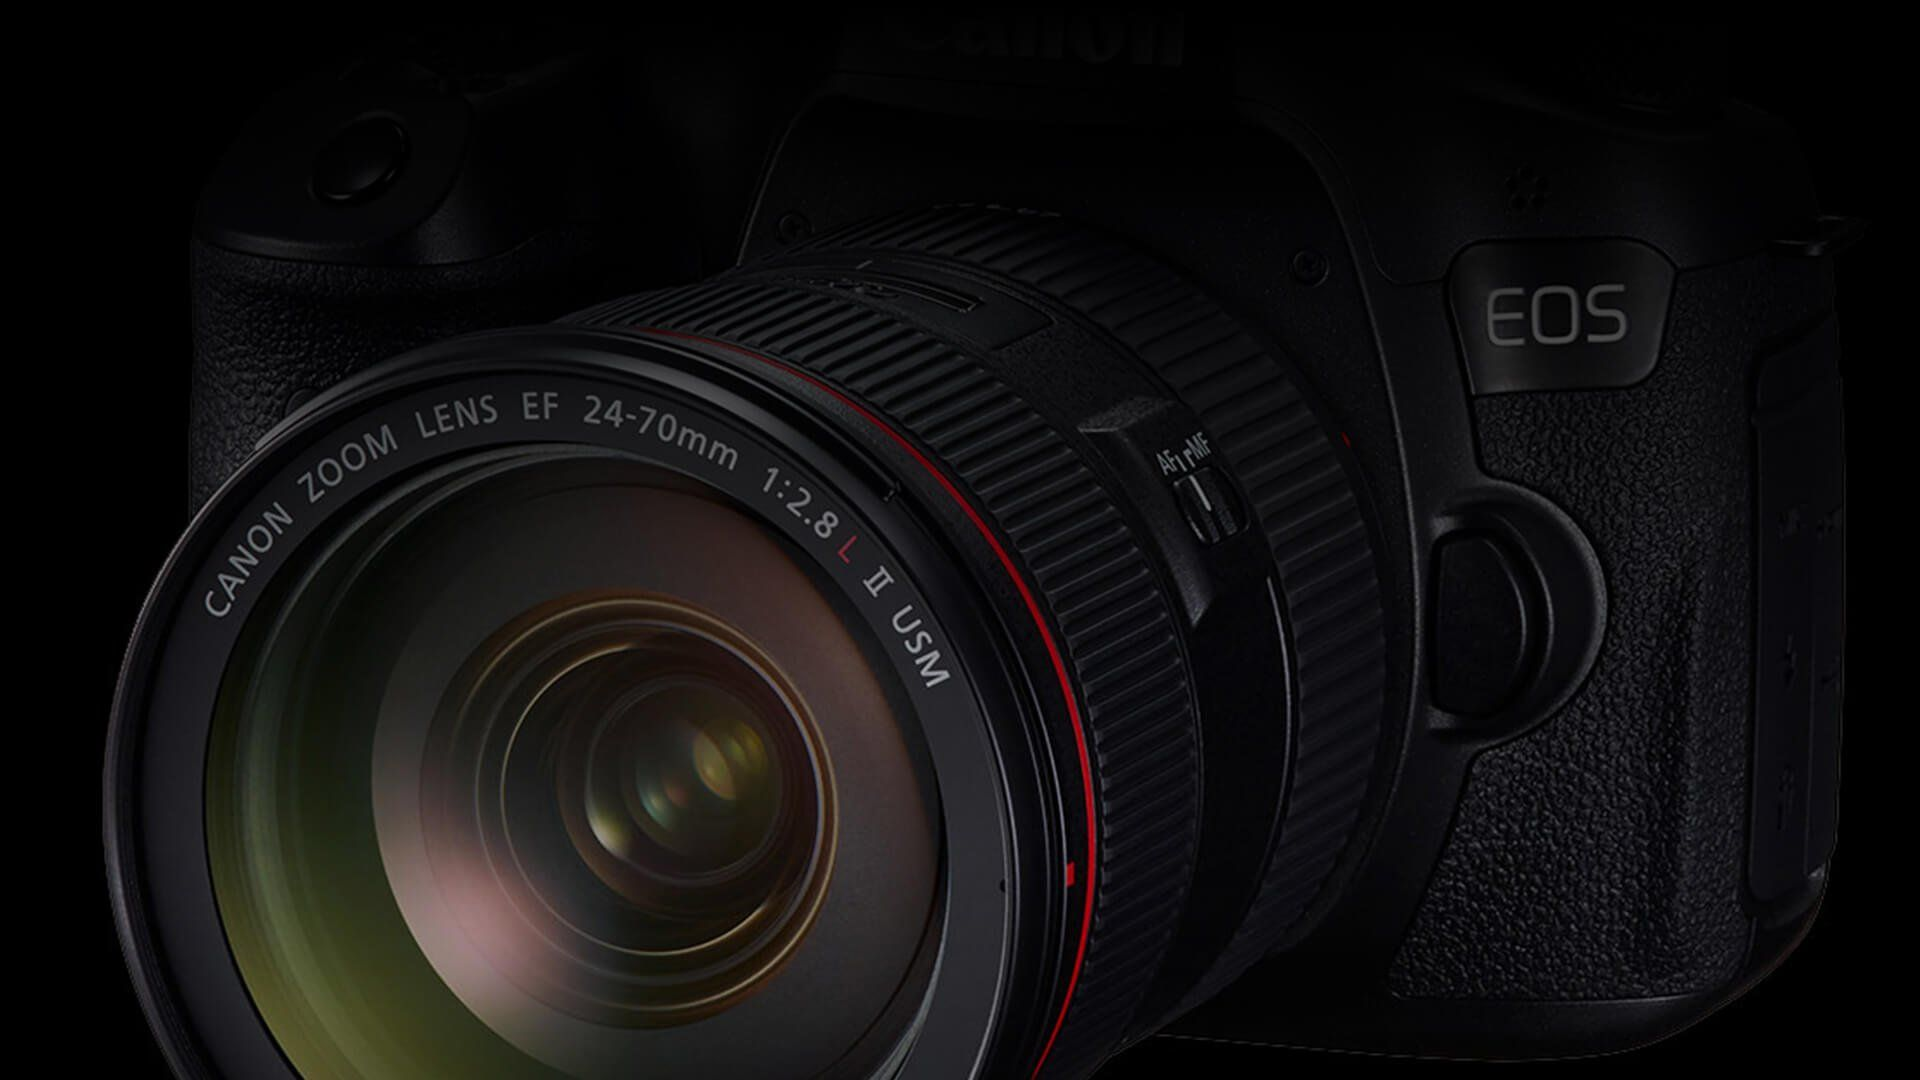 120 megapixel eos camera hero